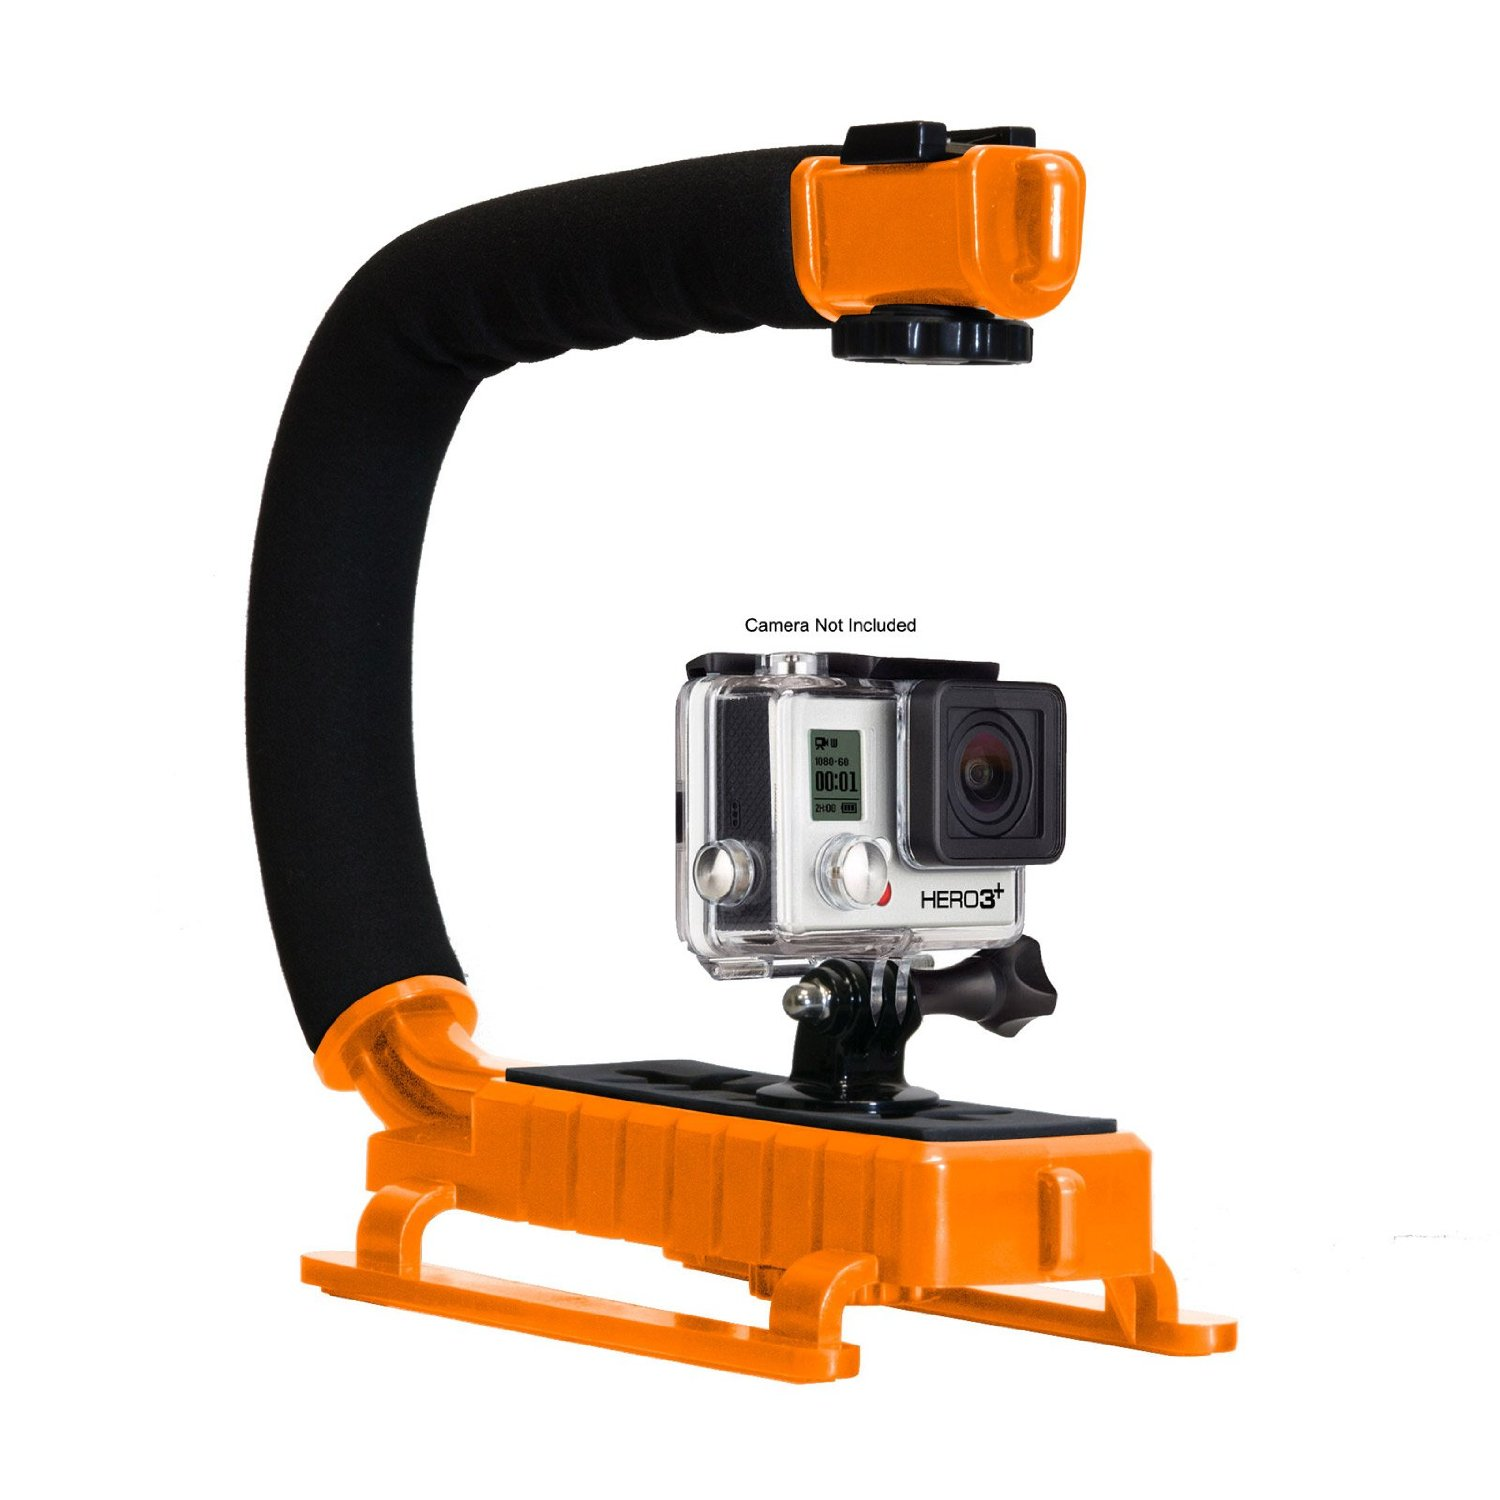 Opteka X-GRIP Professional Action Stabilizing Handle Grip for GoPro Action Cameras